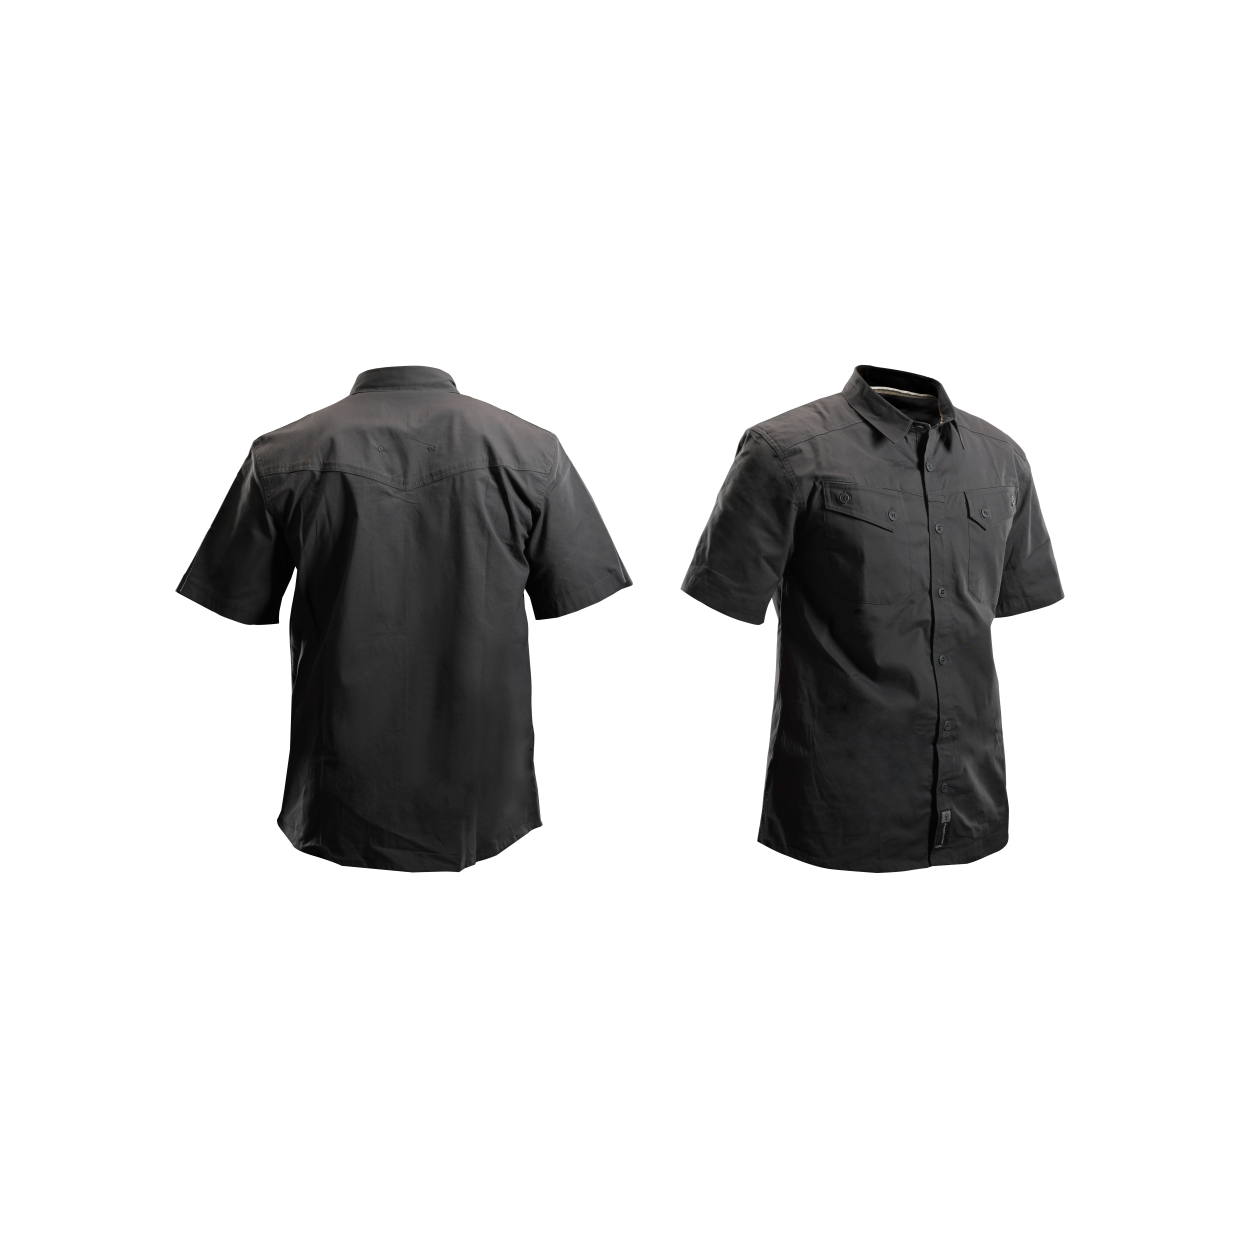 Velox Recon Short Sleeve